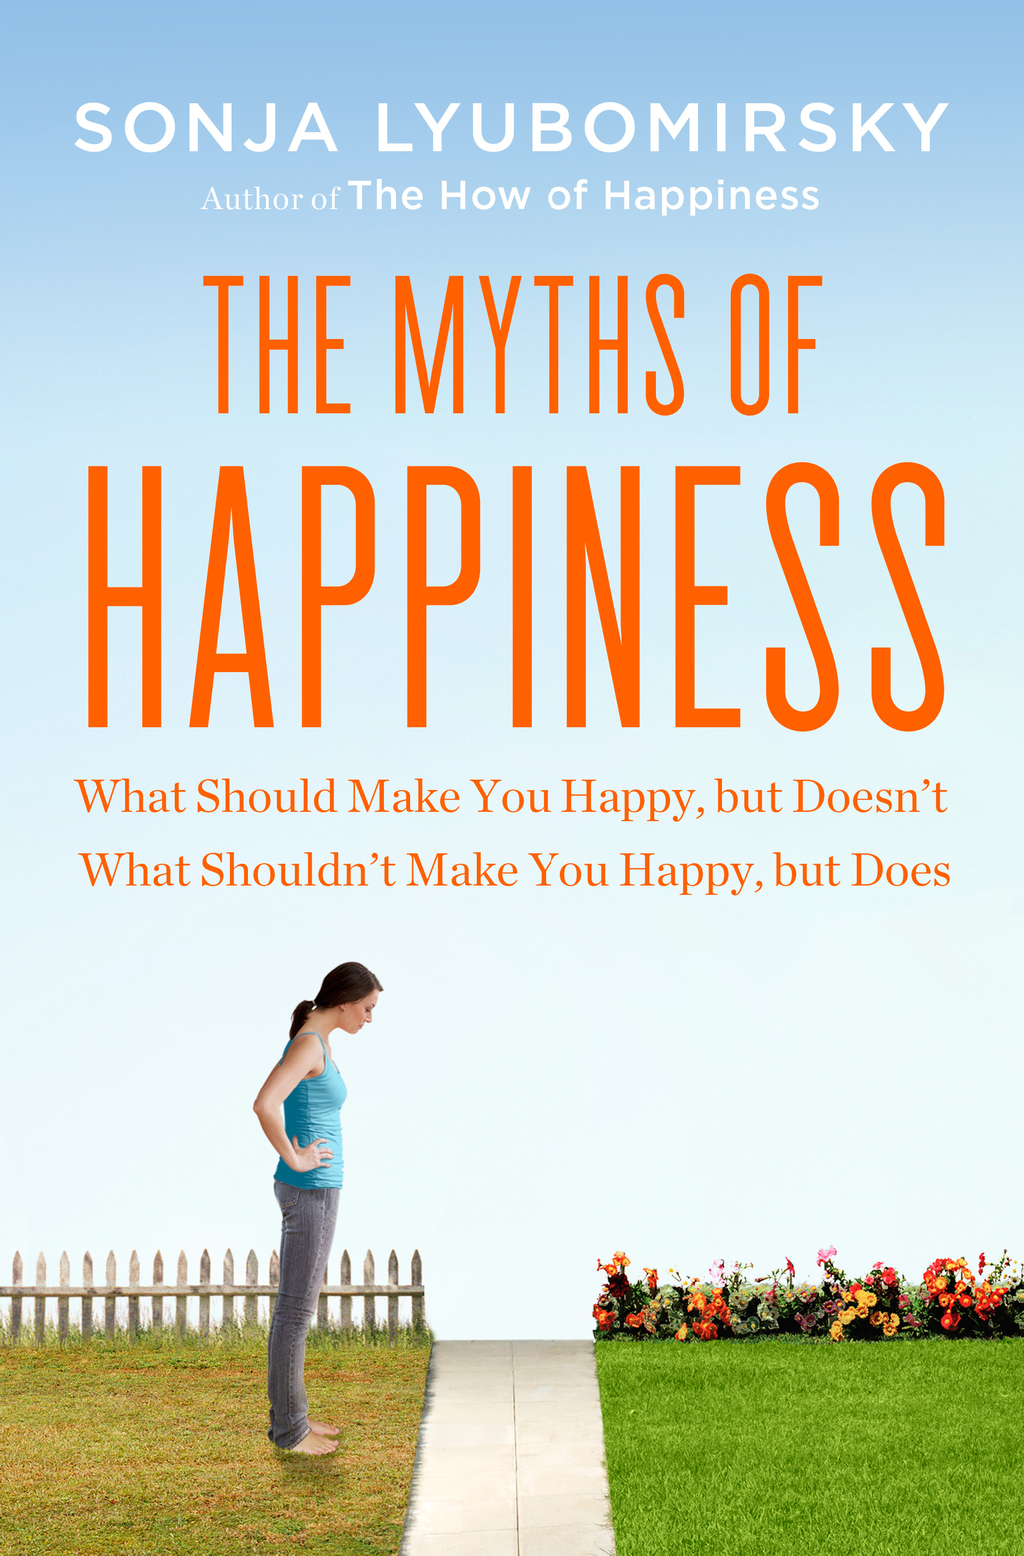 The Myths of Happiness By: Sonja Lyubomirsky